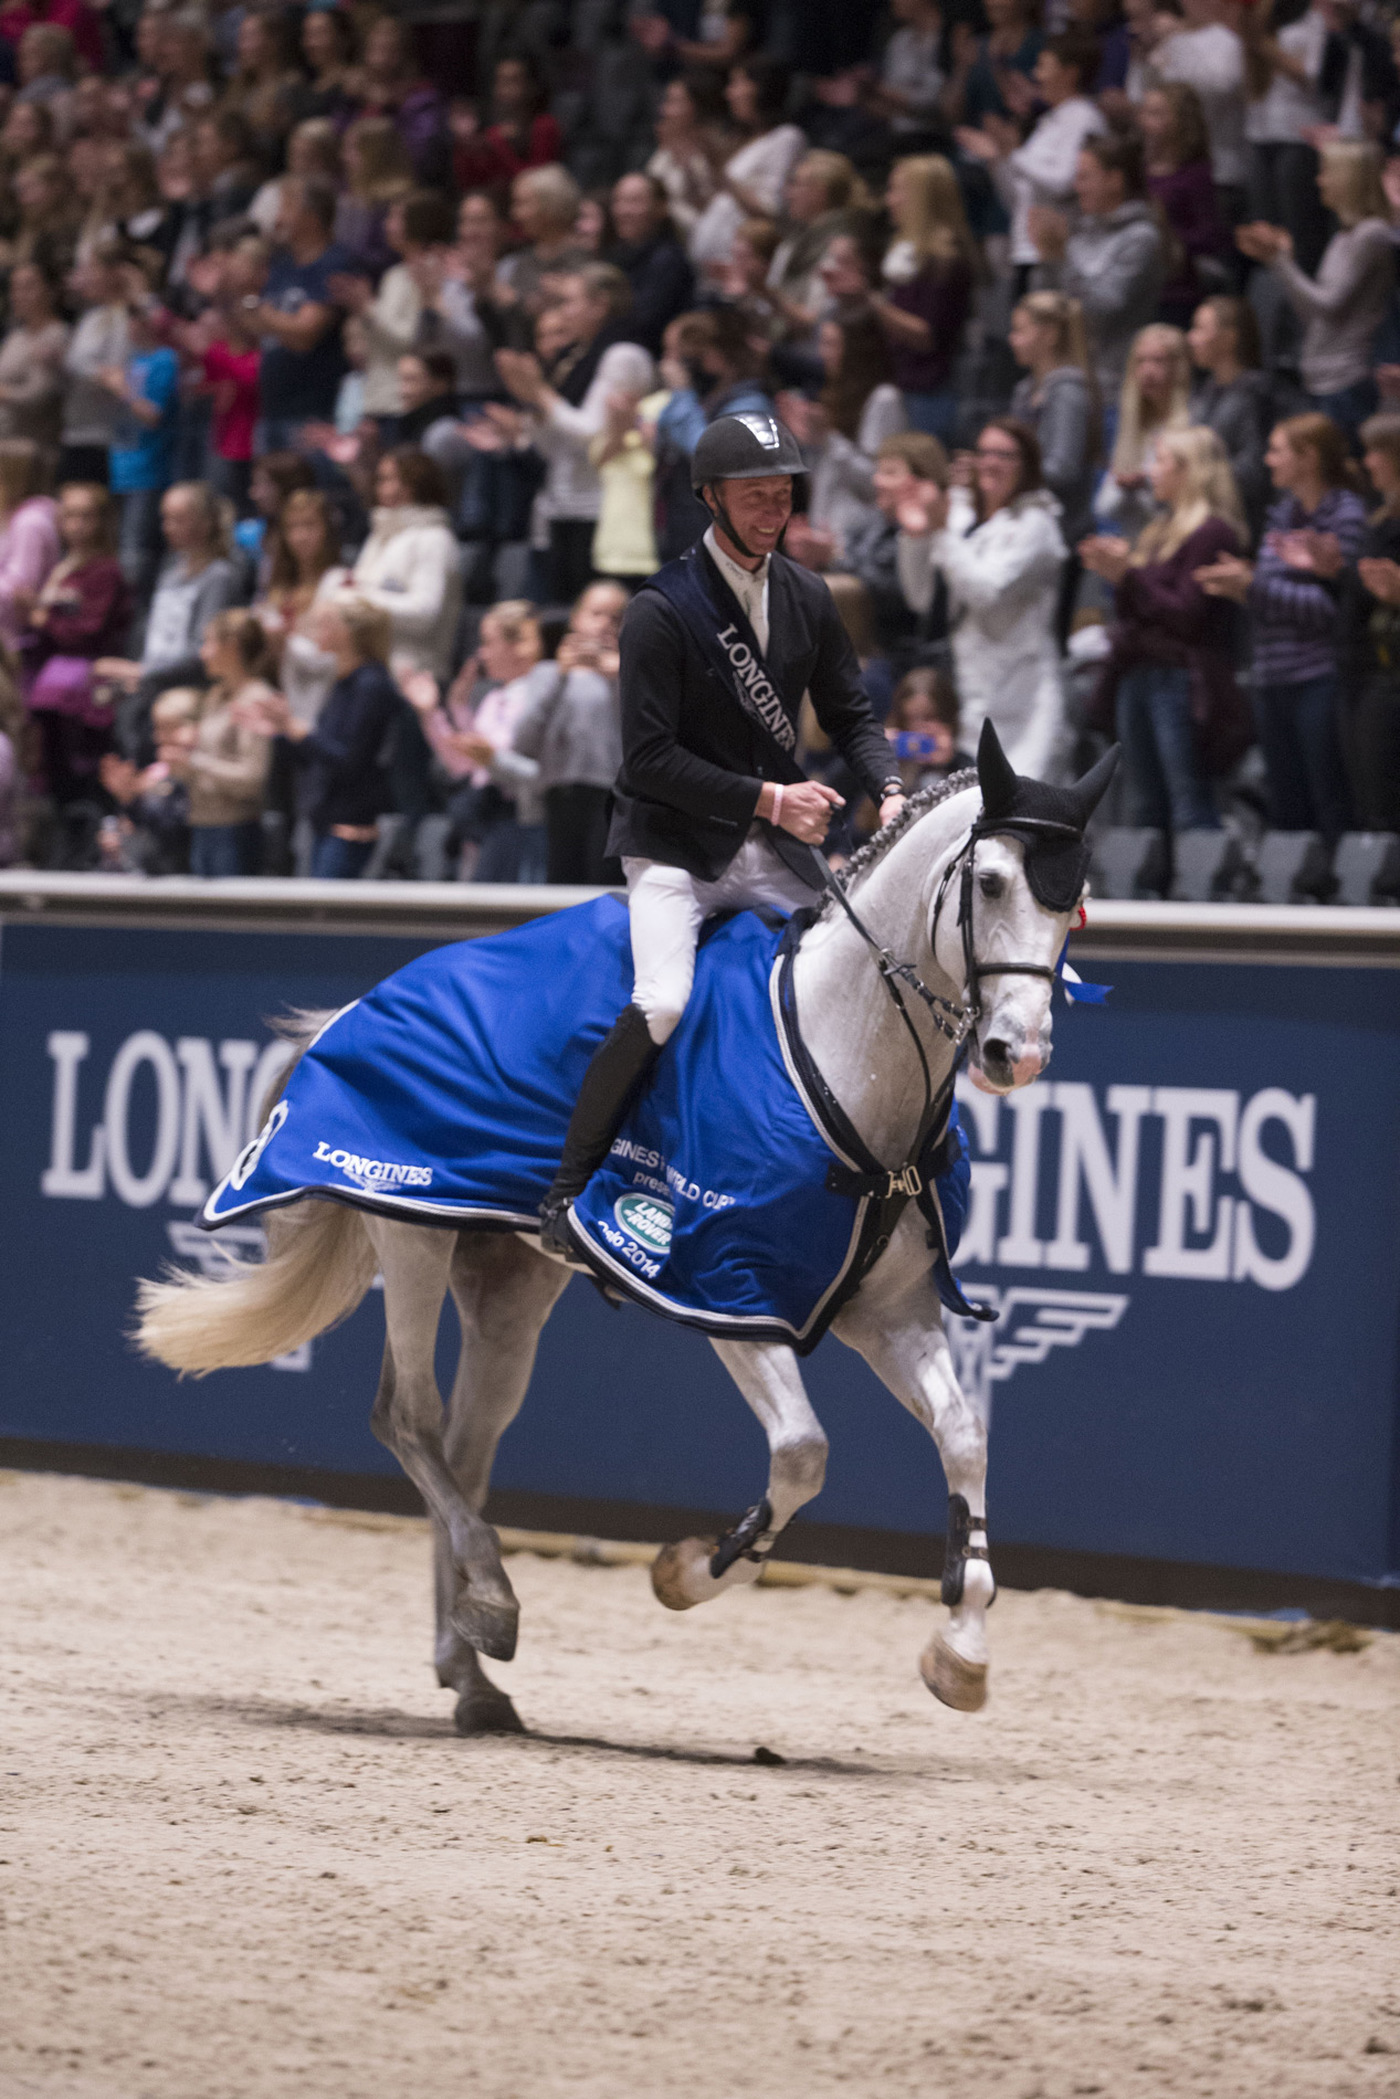 Longines Show Jumping Event: Longines FEI World Cup™ Jumping 2014/2015 – Oslo marks the start of an exciting season 5